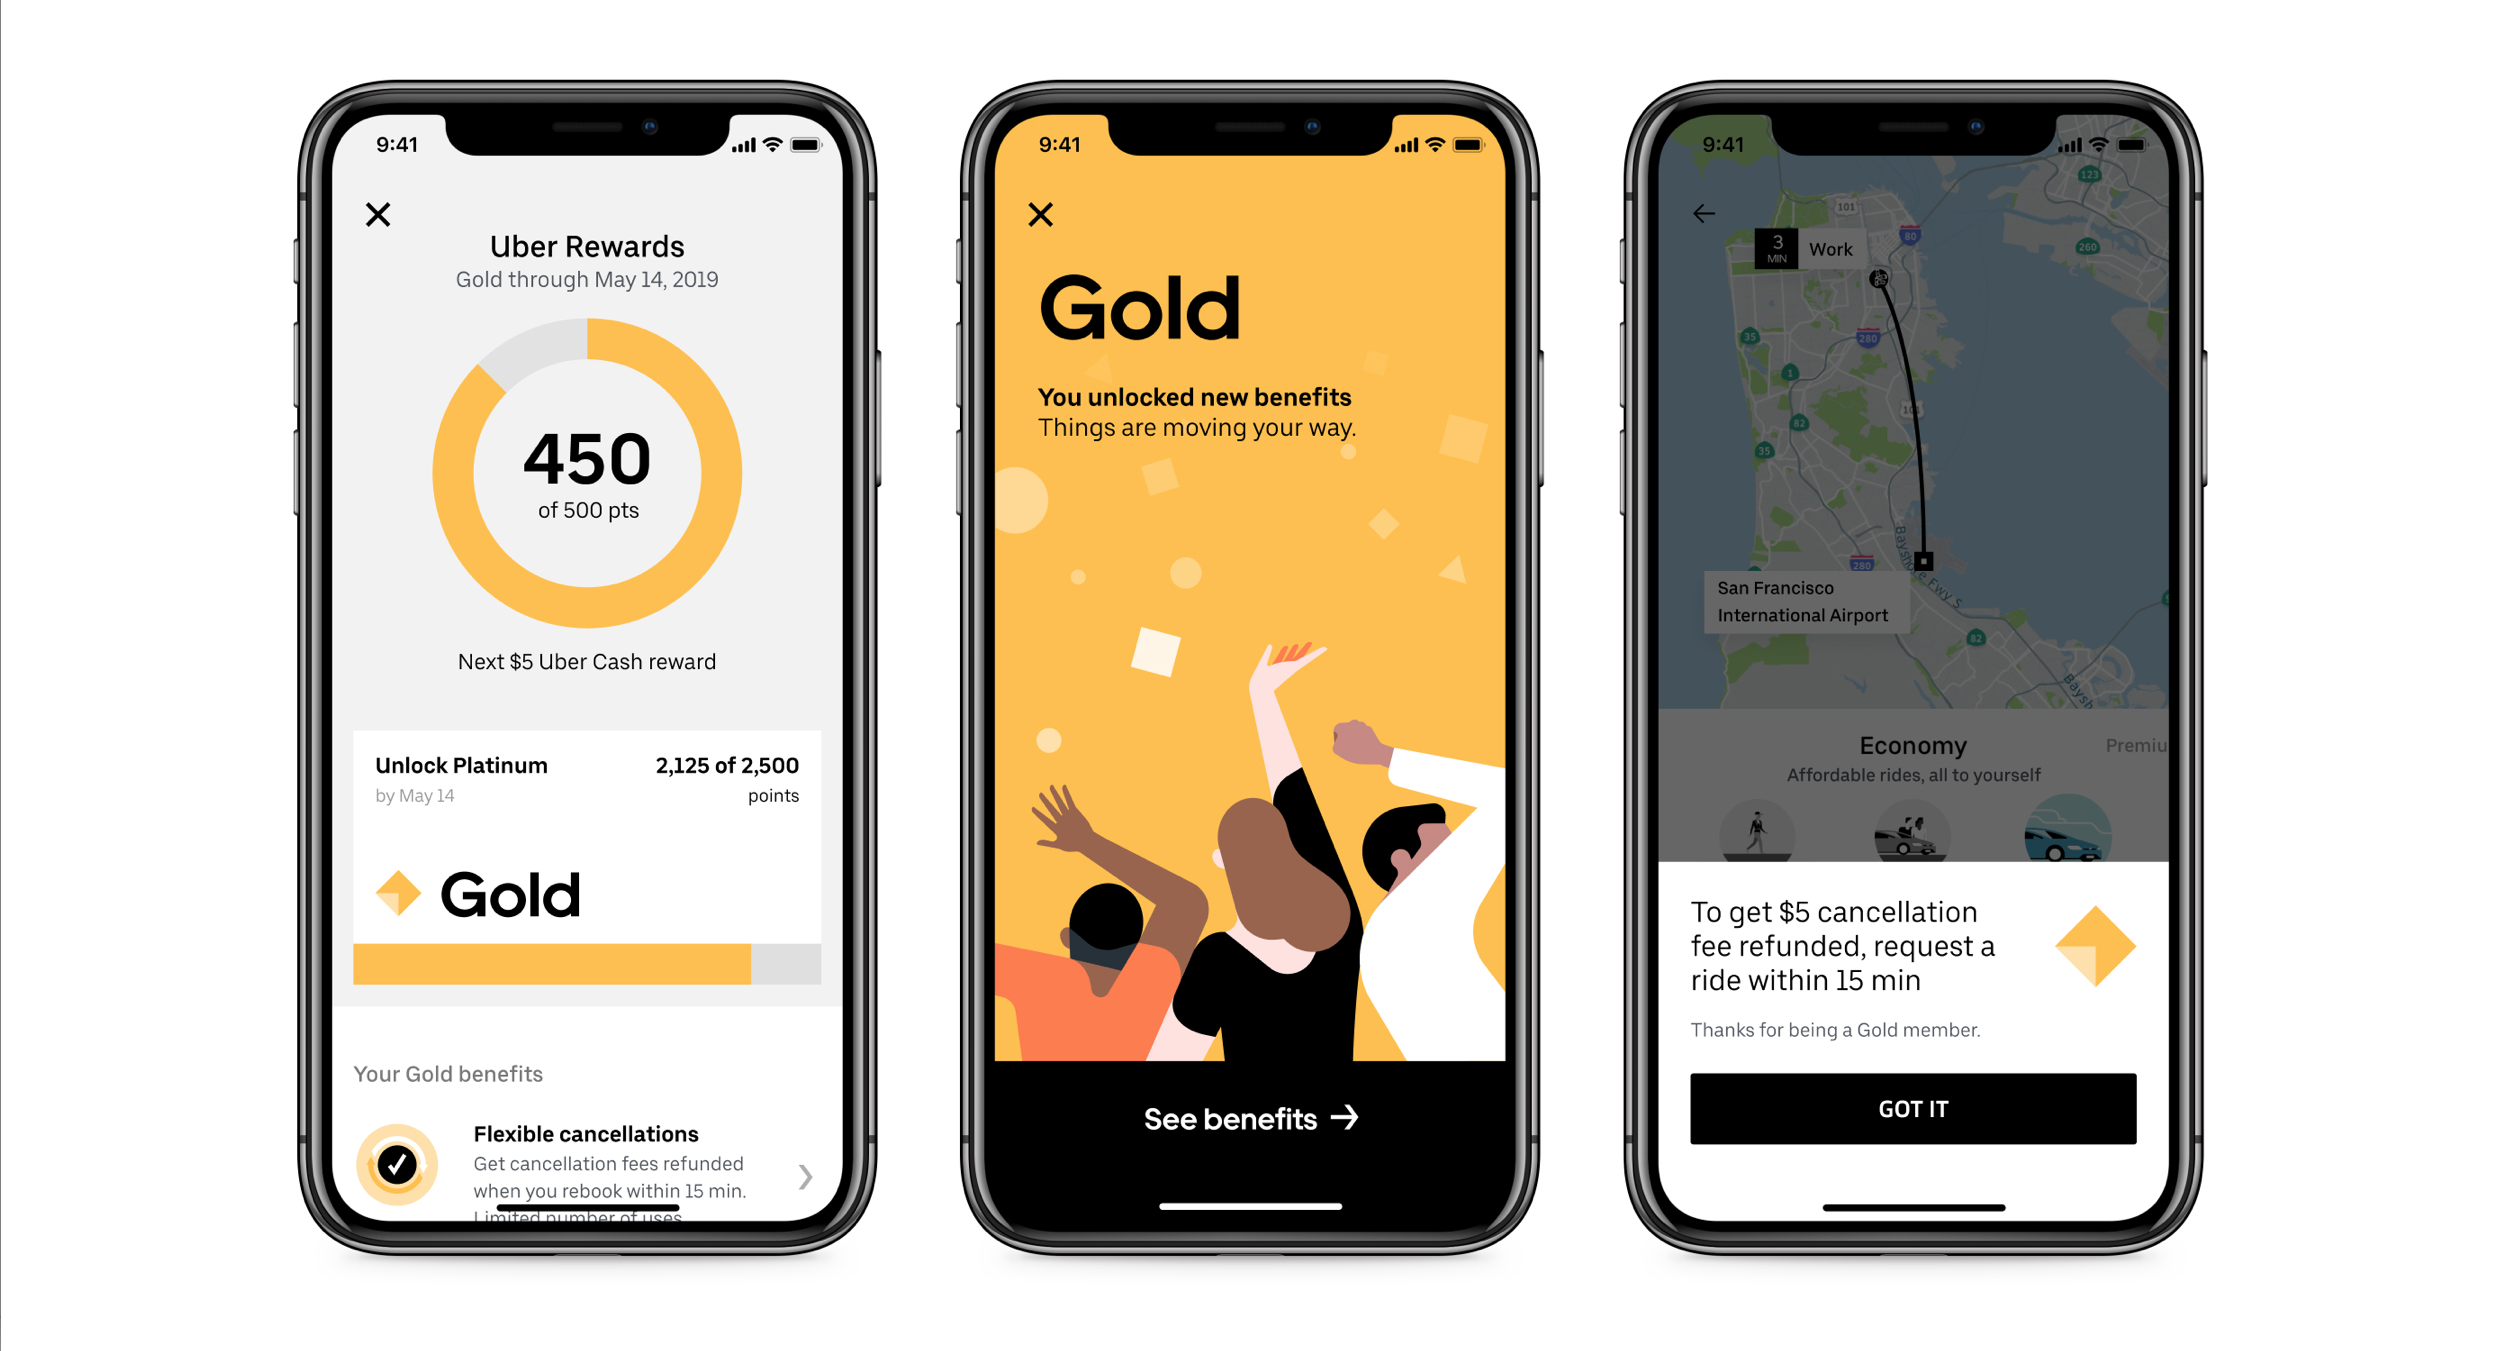 Uber-Rewards gamification example